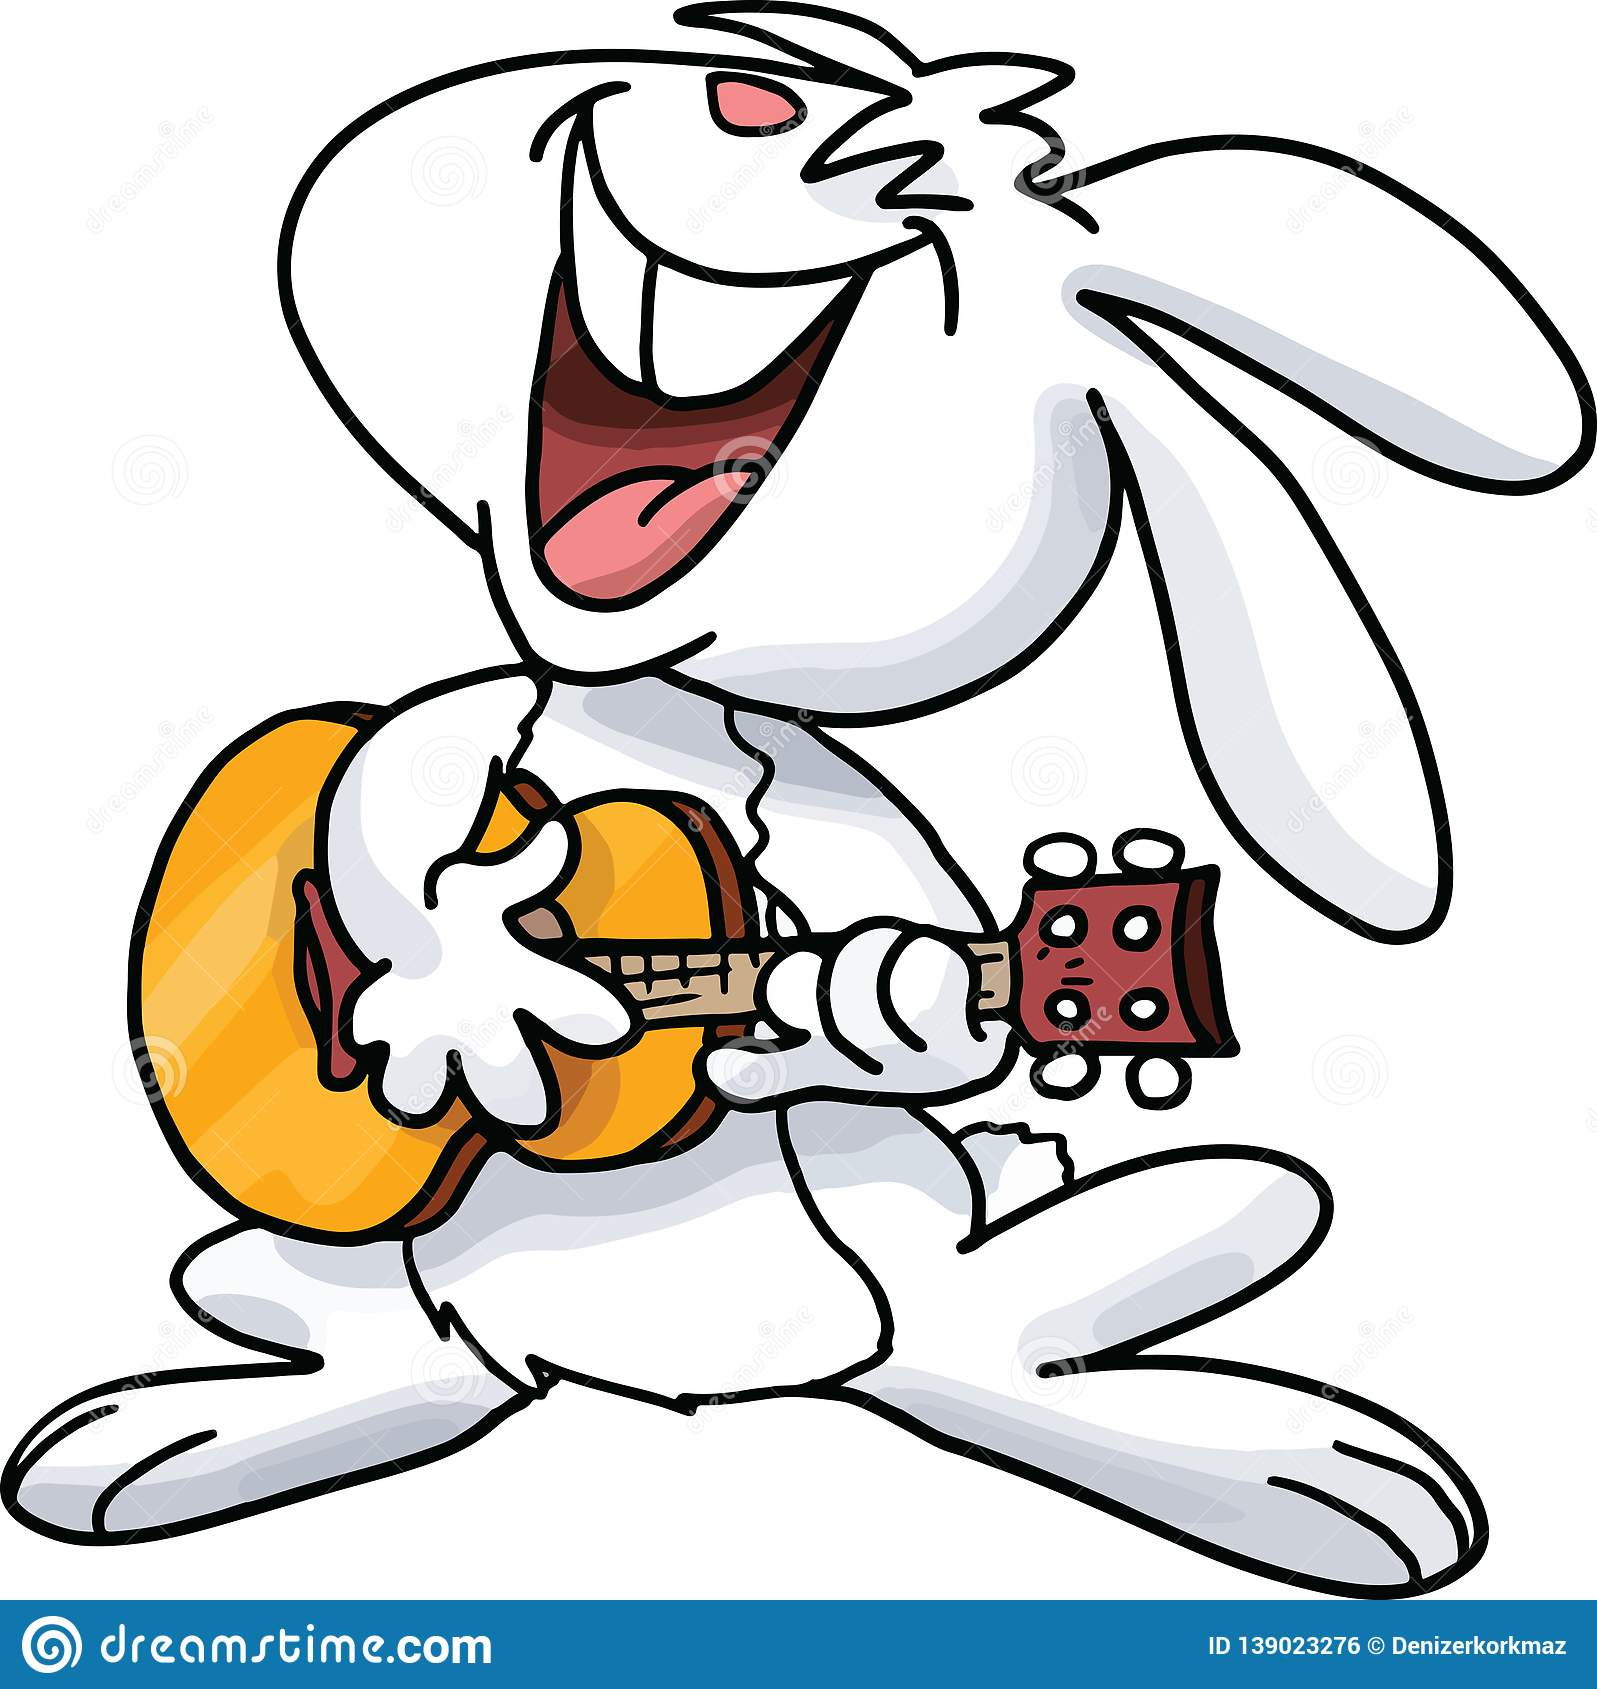 Singing Rabbit Stock Illustrations 195 Singing Rabbit Stock Illustrations Vectors Clipart Dreamstime